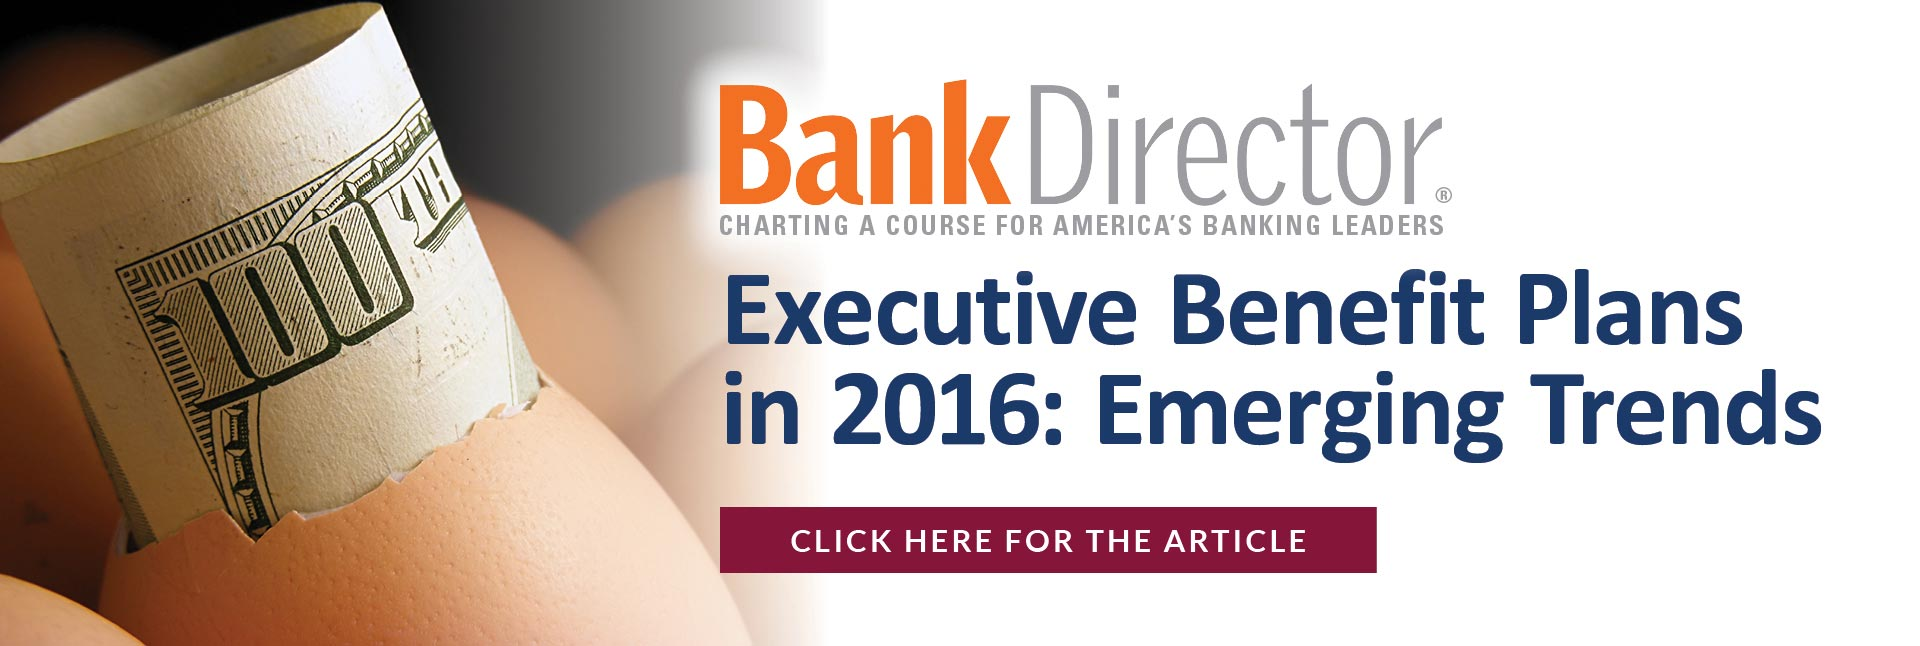 Bank Director - Executive Benefit Plans in 2016: Emerging Trends